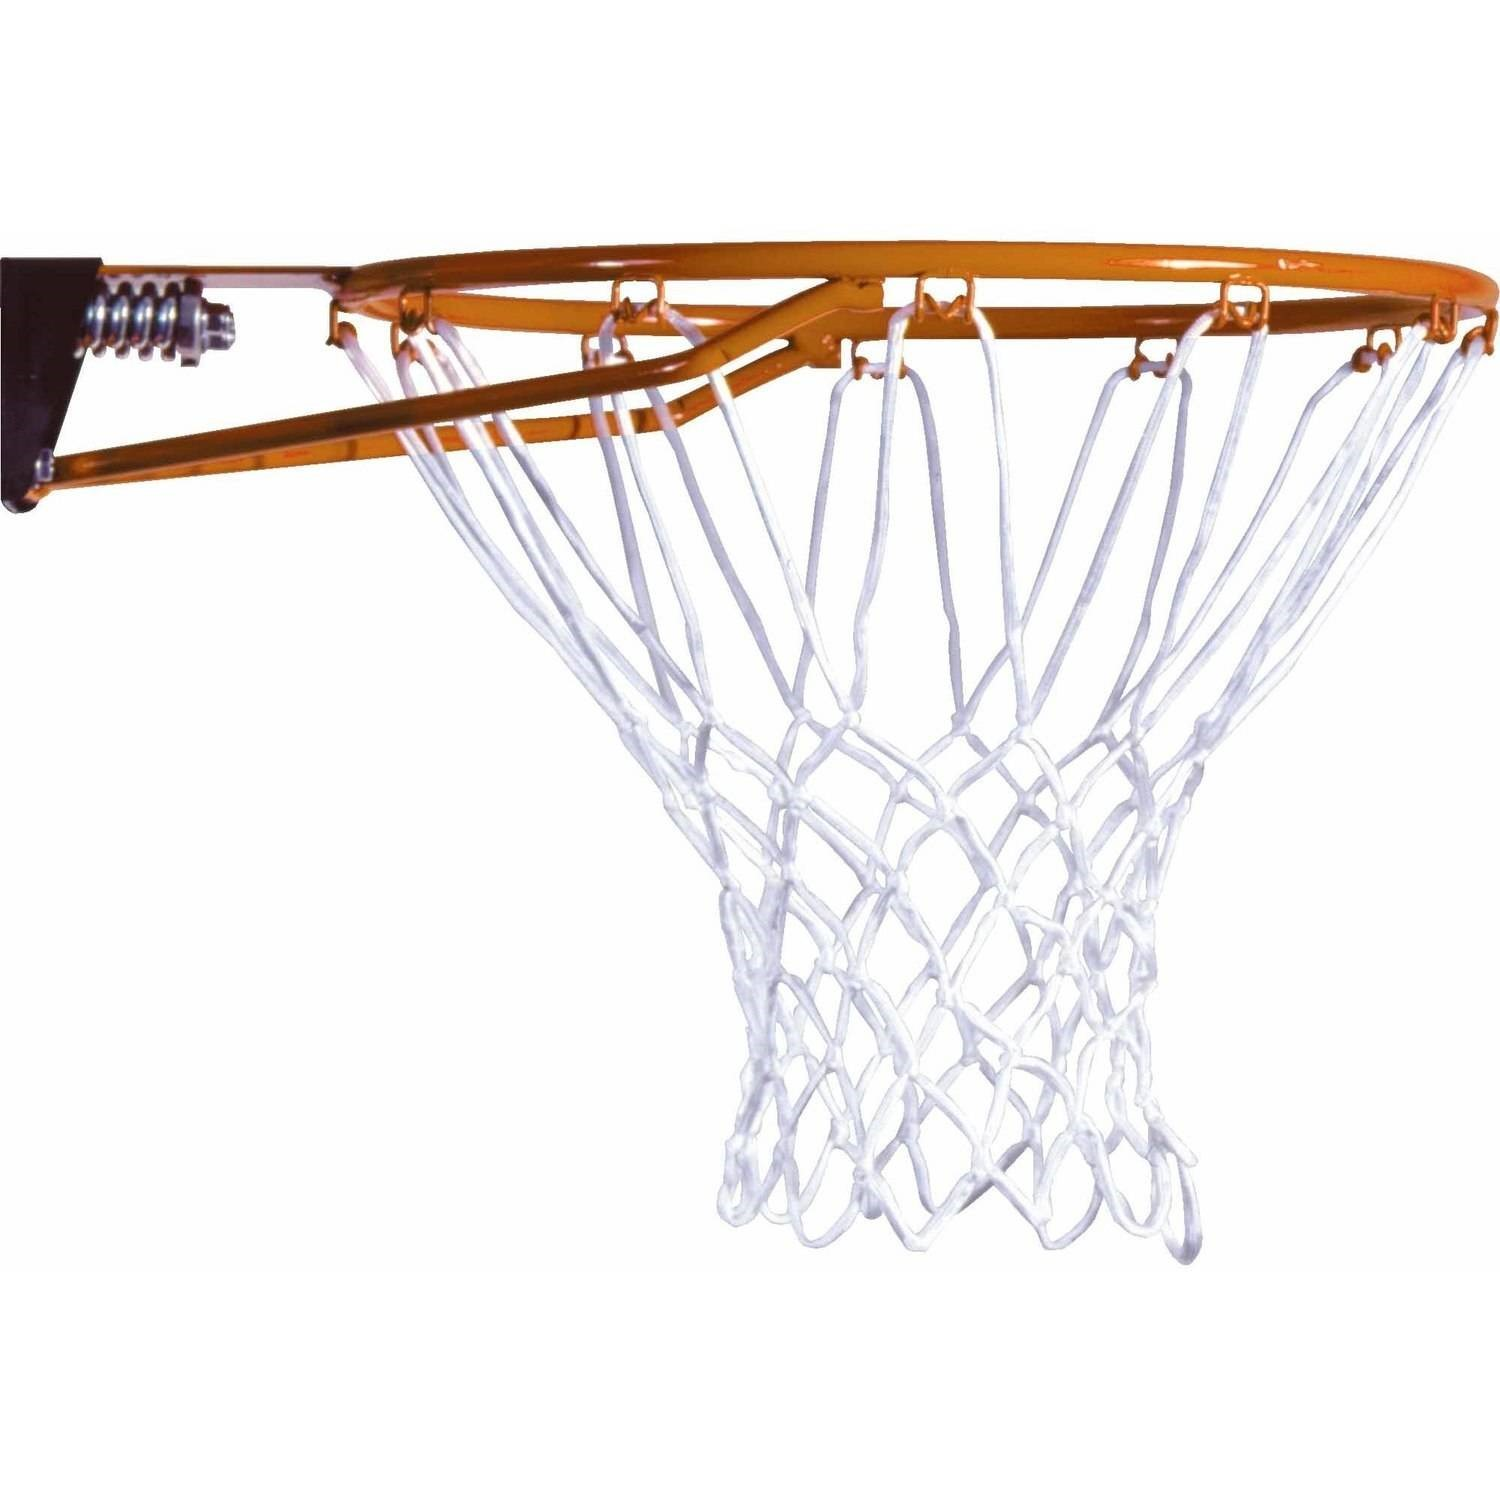 Lifetime Slam-it Basketball Rim, 5820